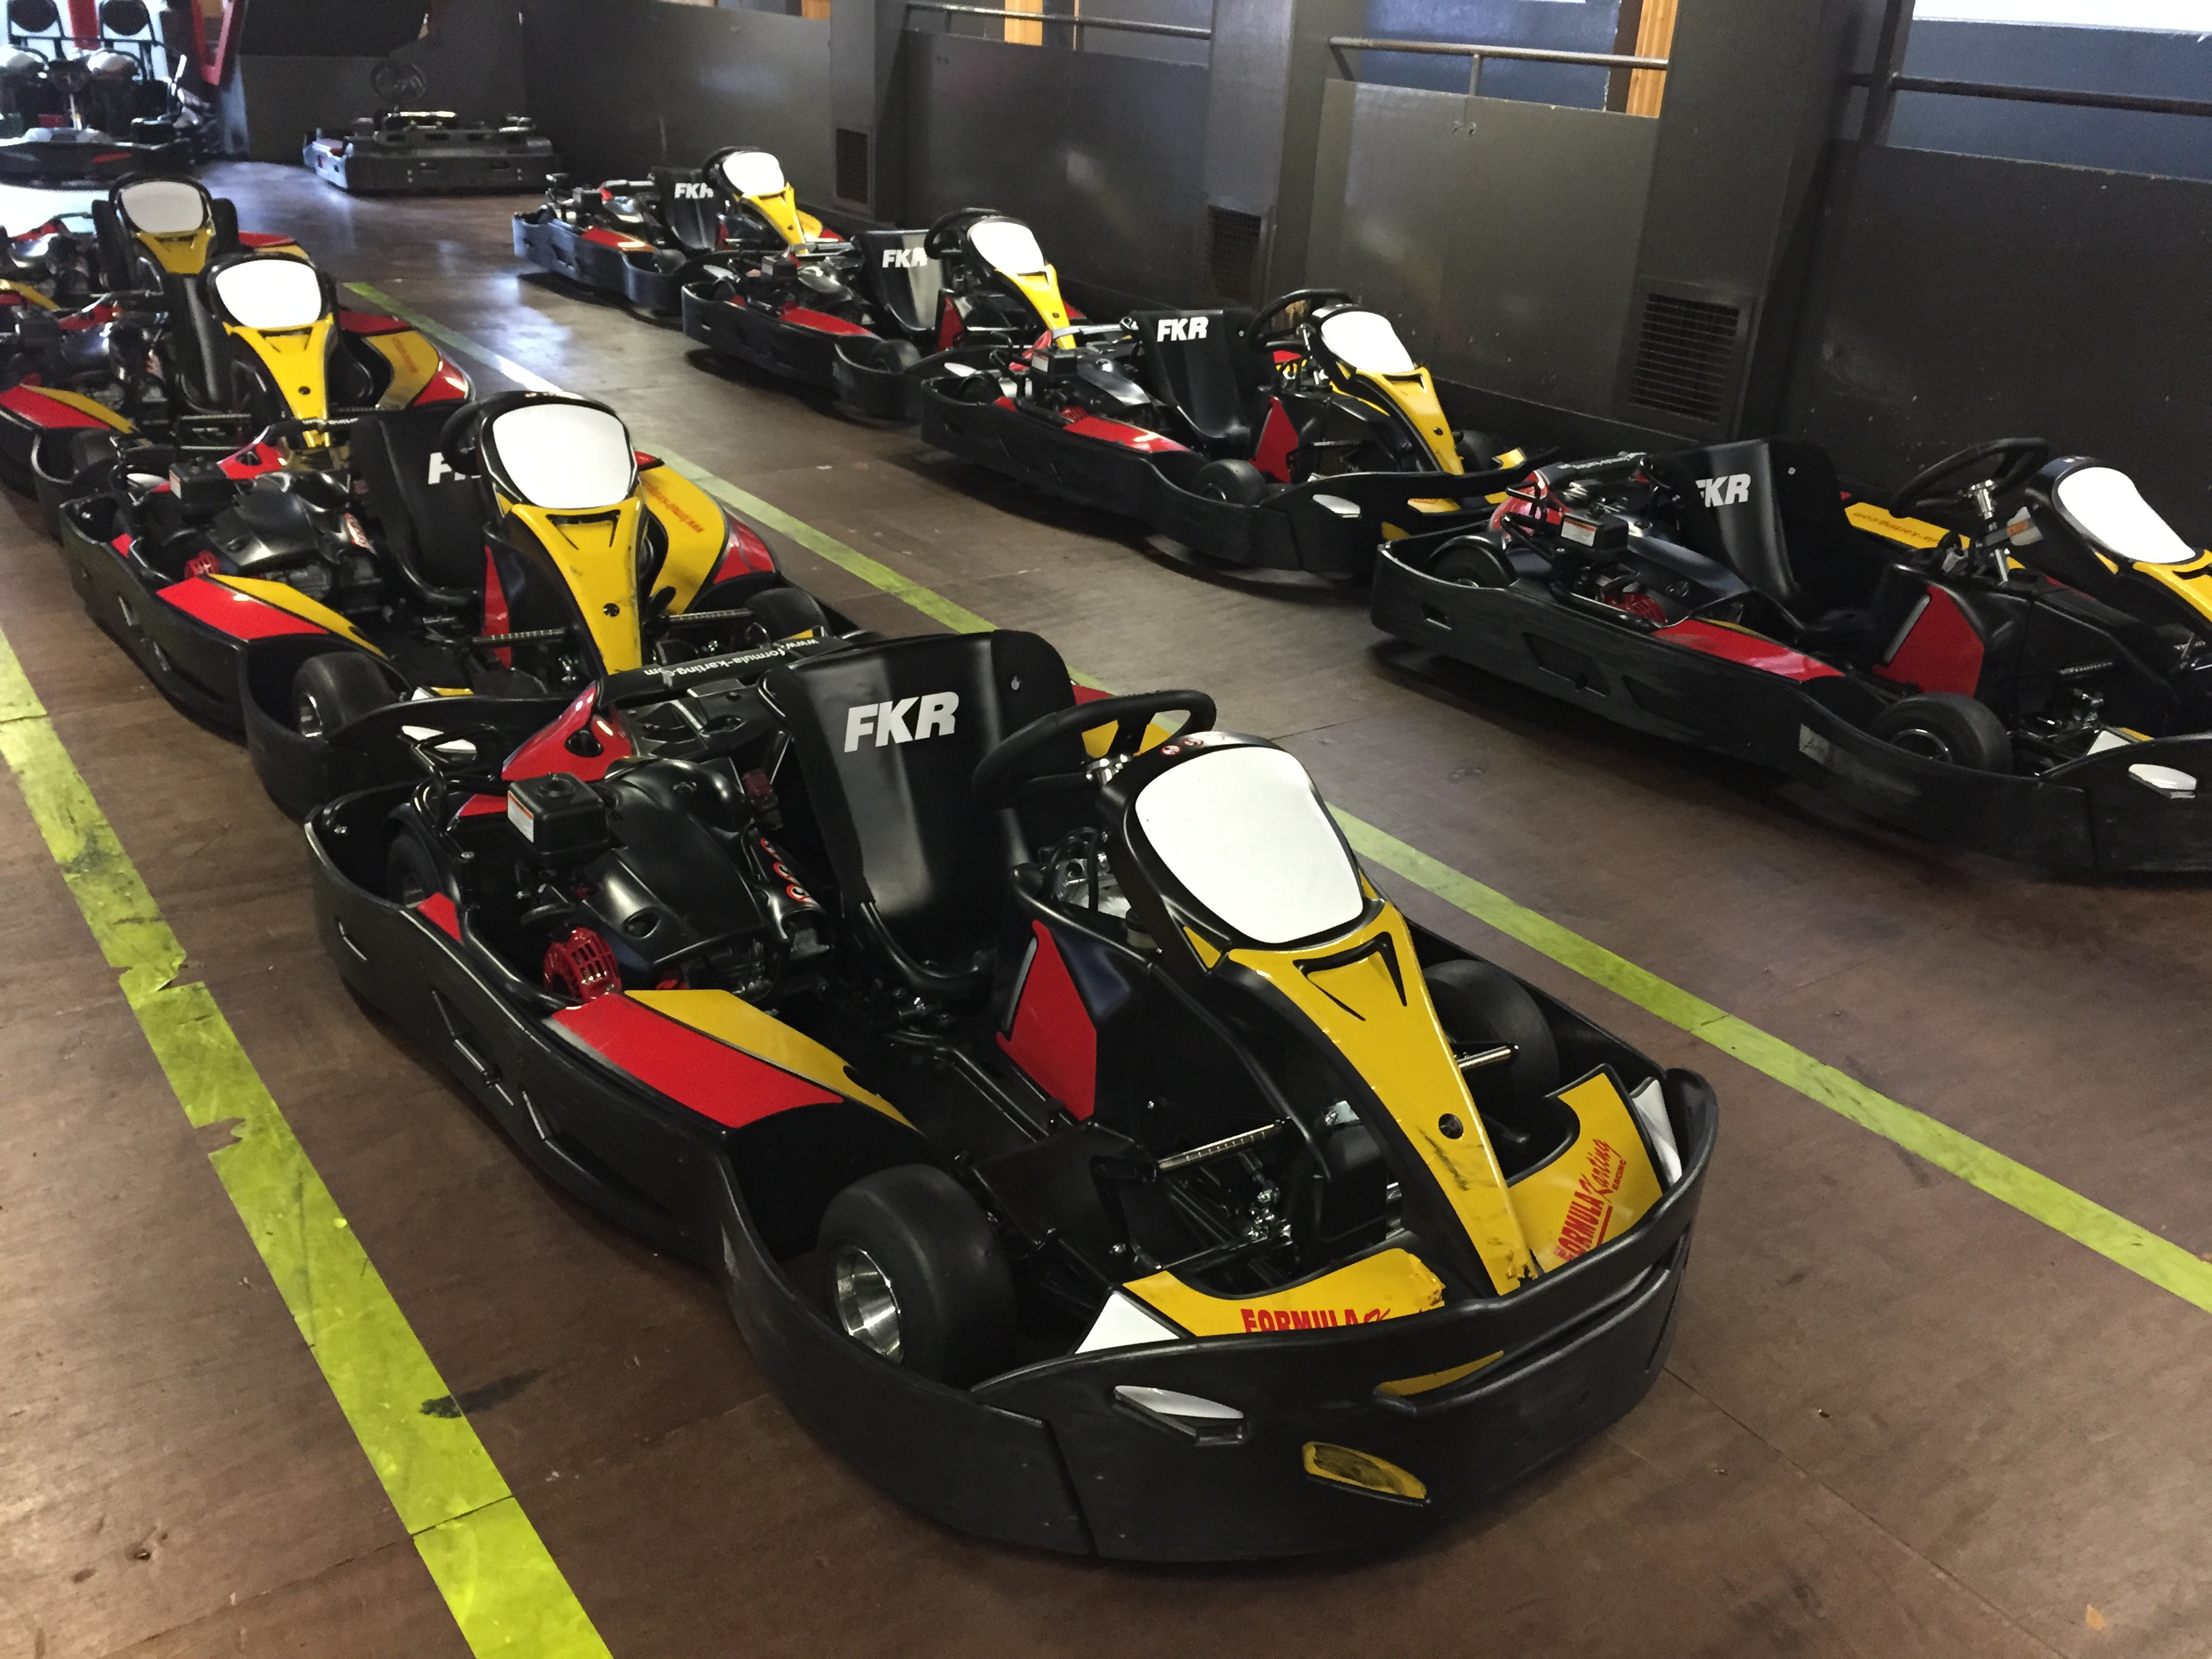 https://formula-karting.com/wp-content/uploads/2017/07/new-karts.jpg